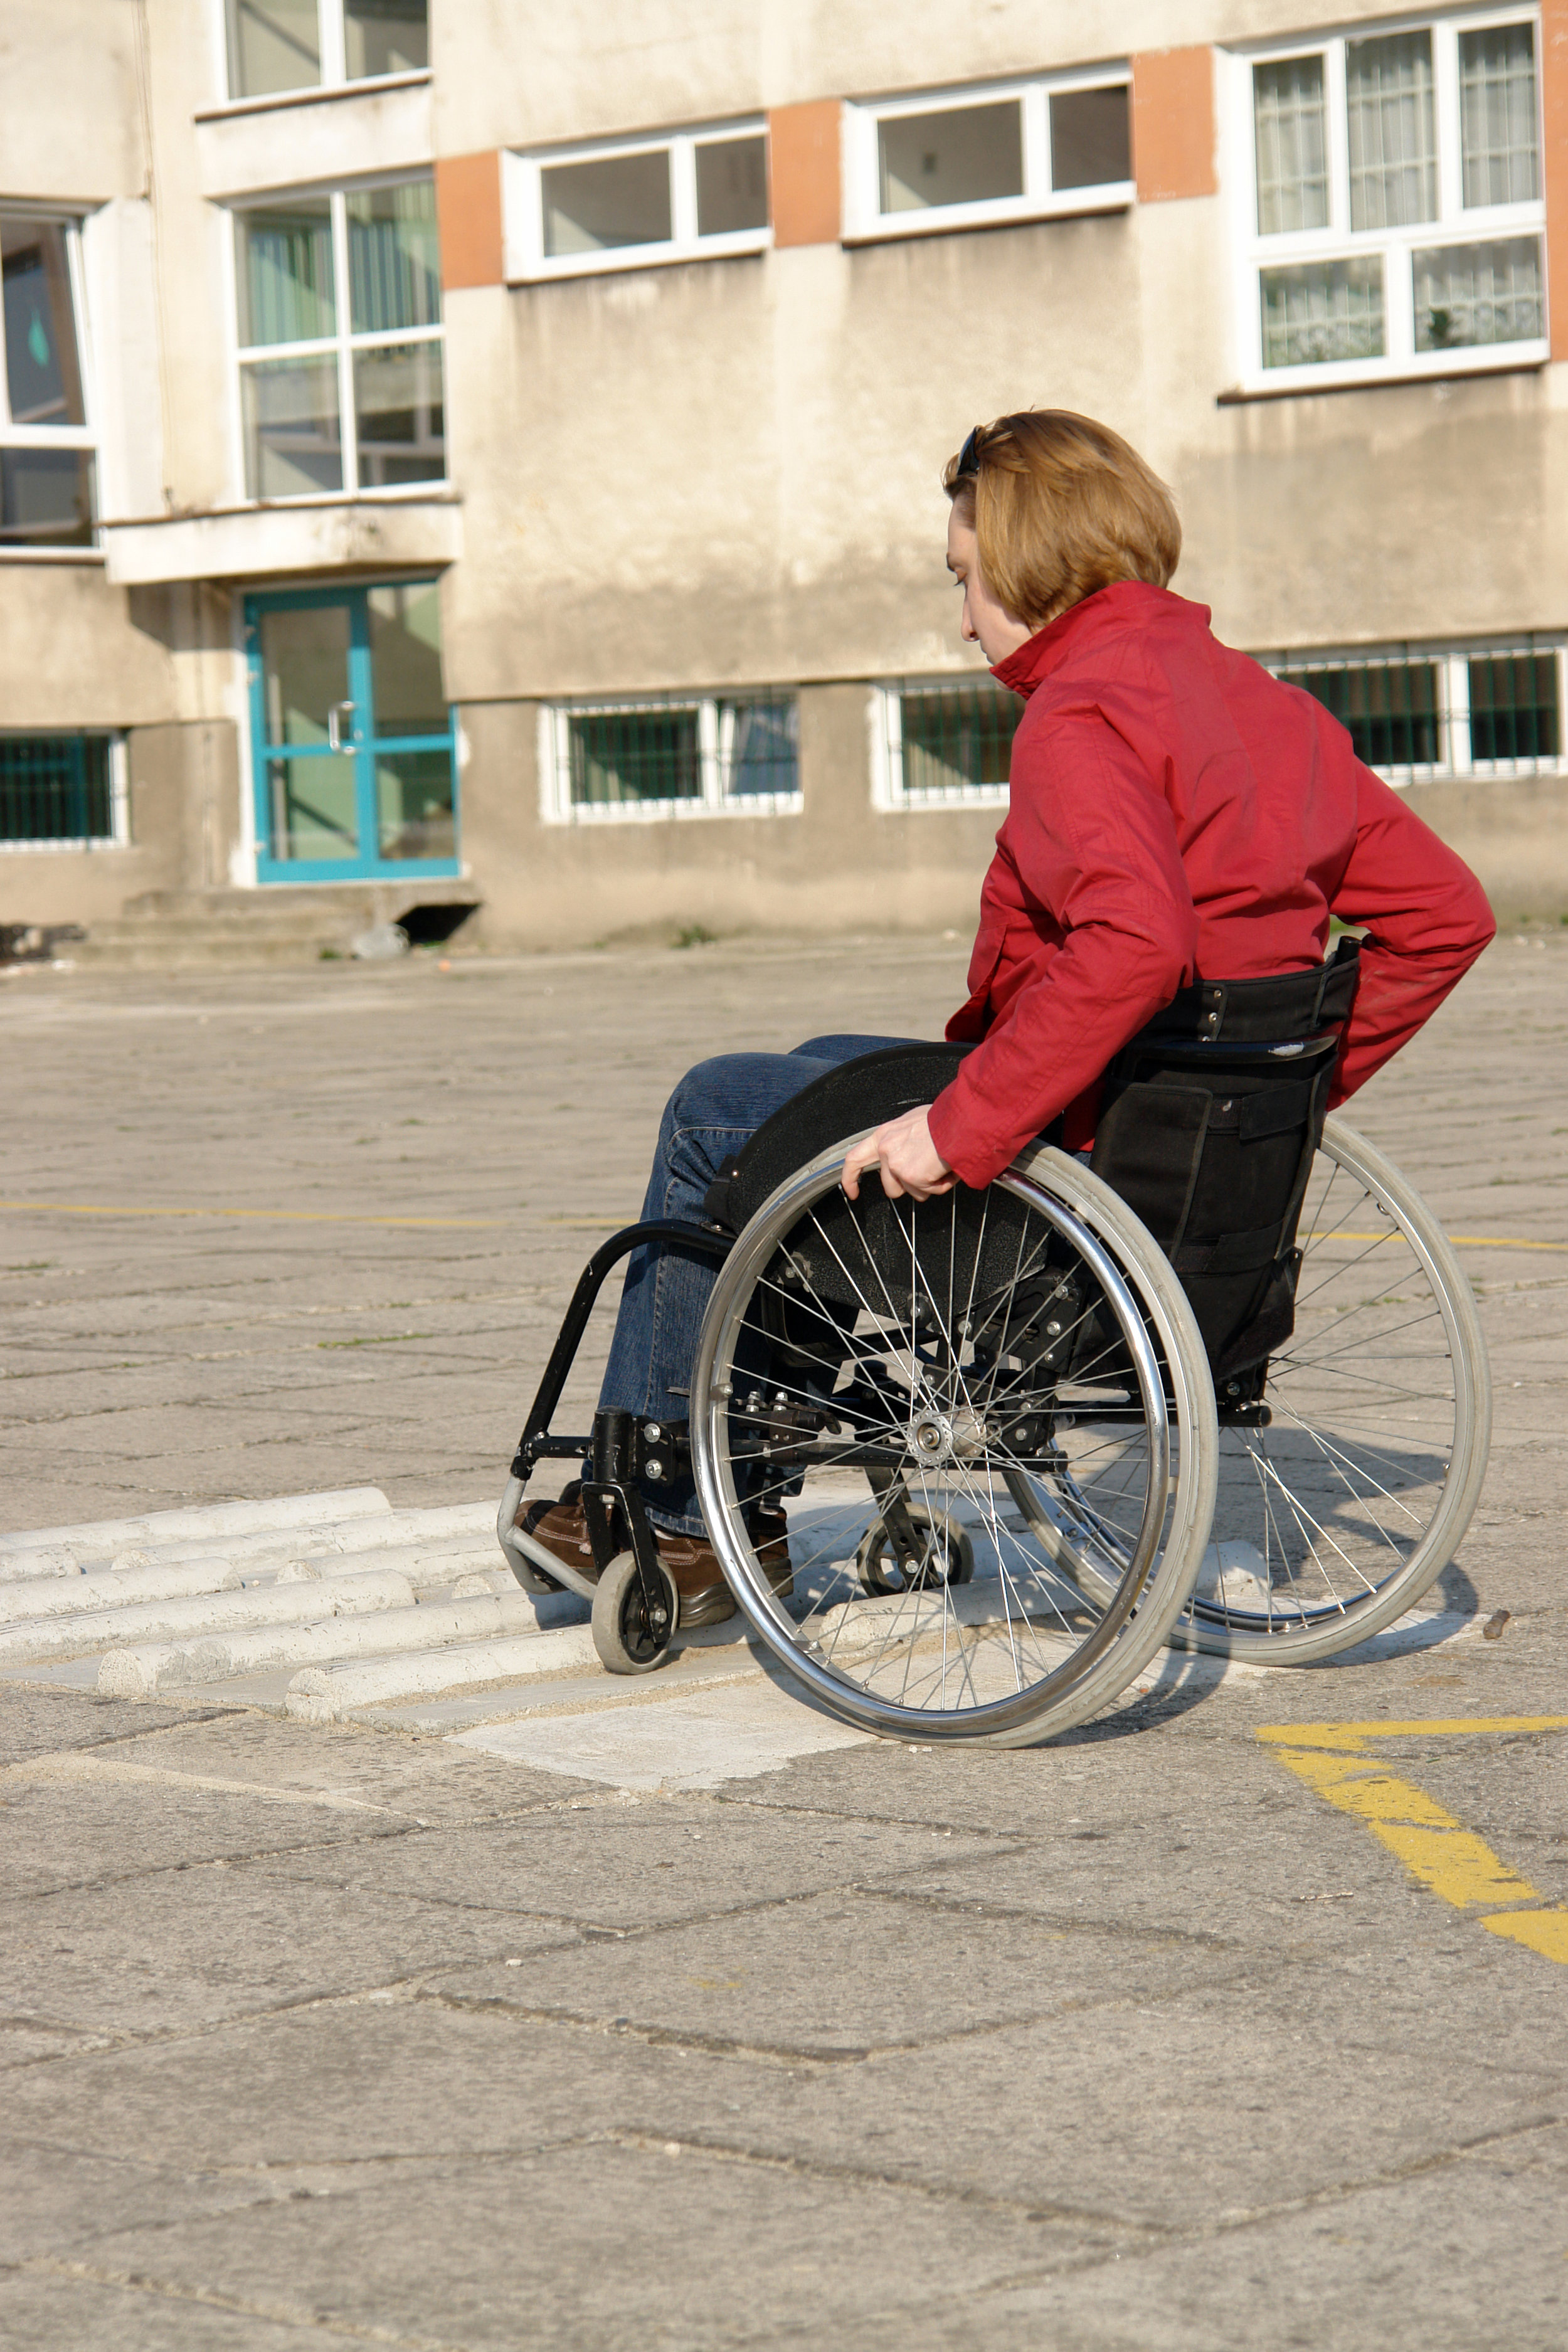 Wheelchair_Boy:Girl_in_Front_of_Building.jpeg